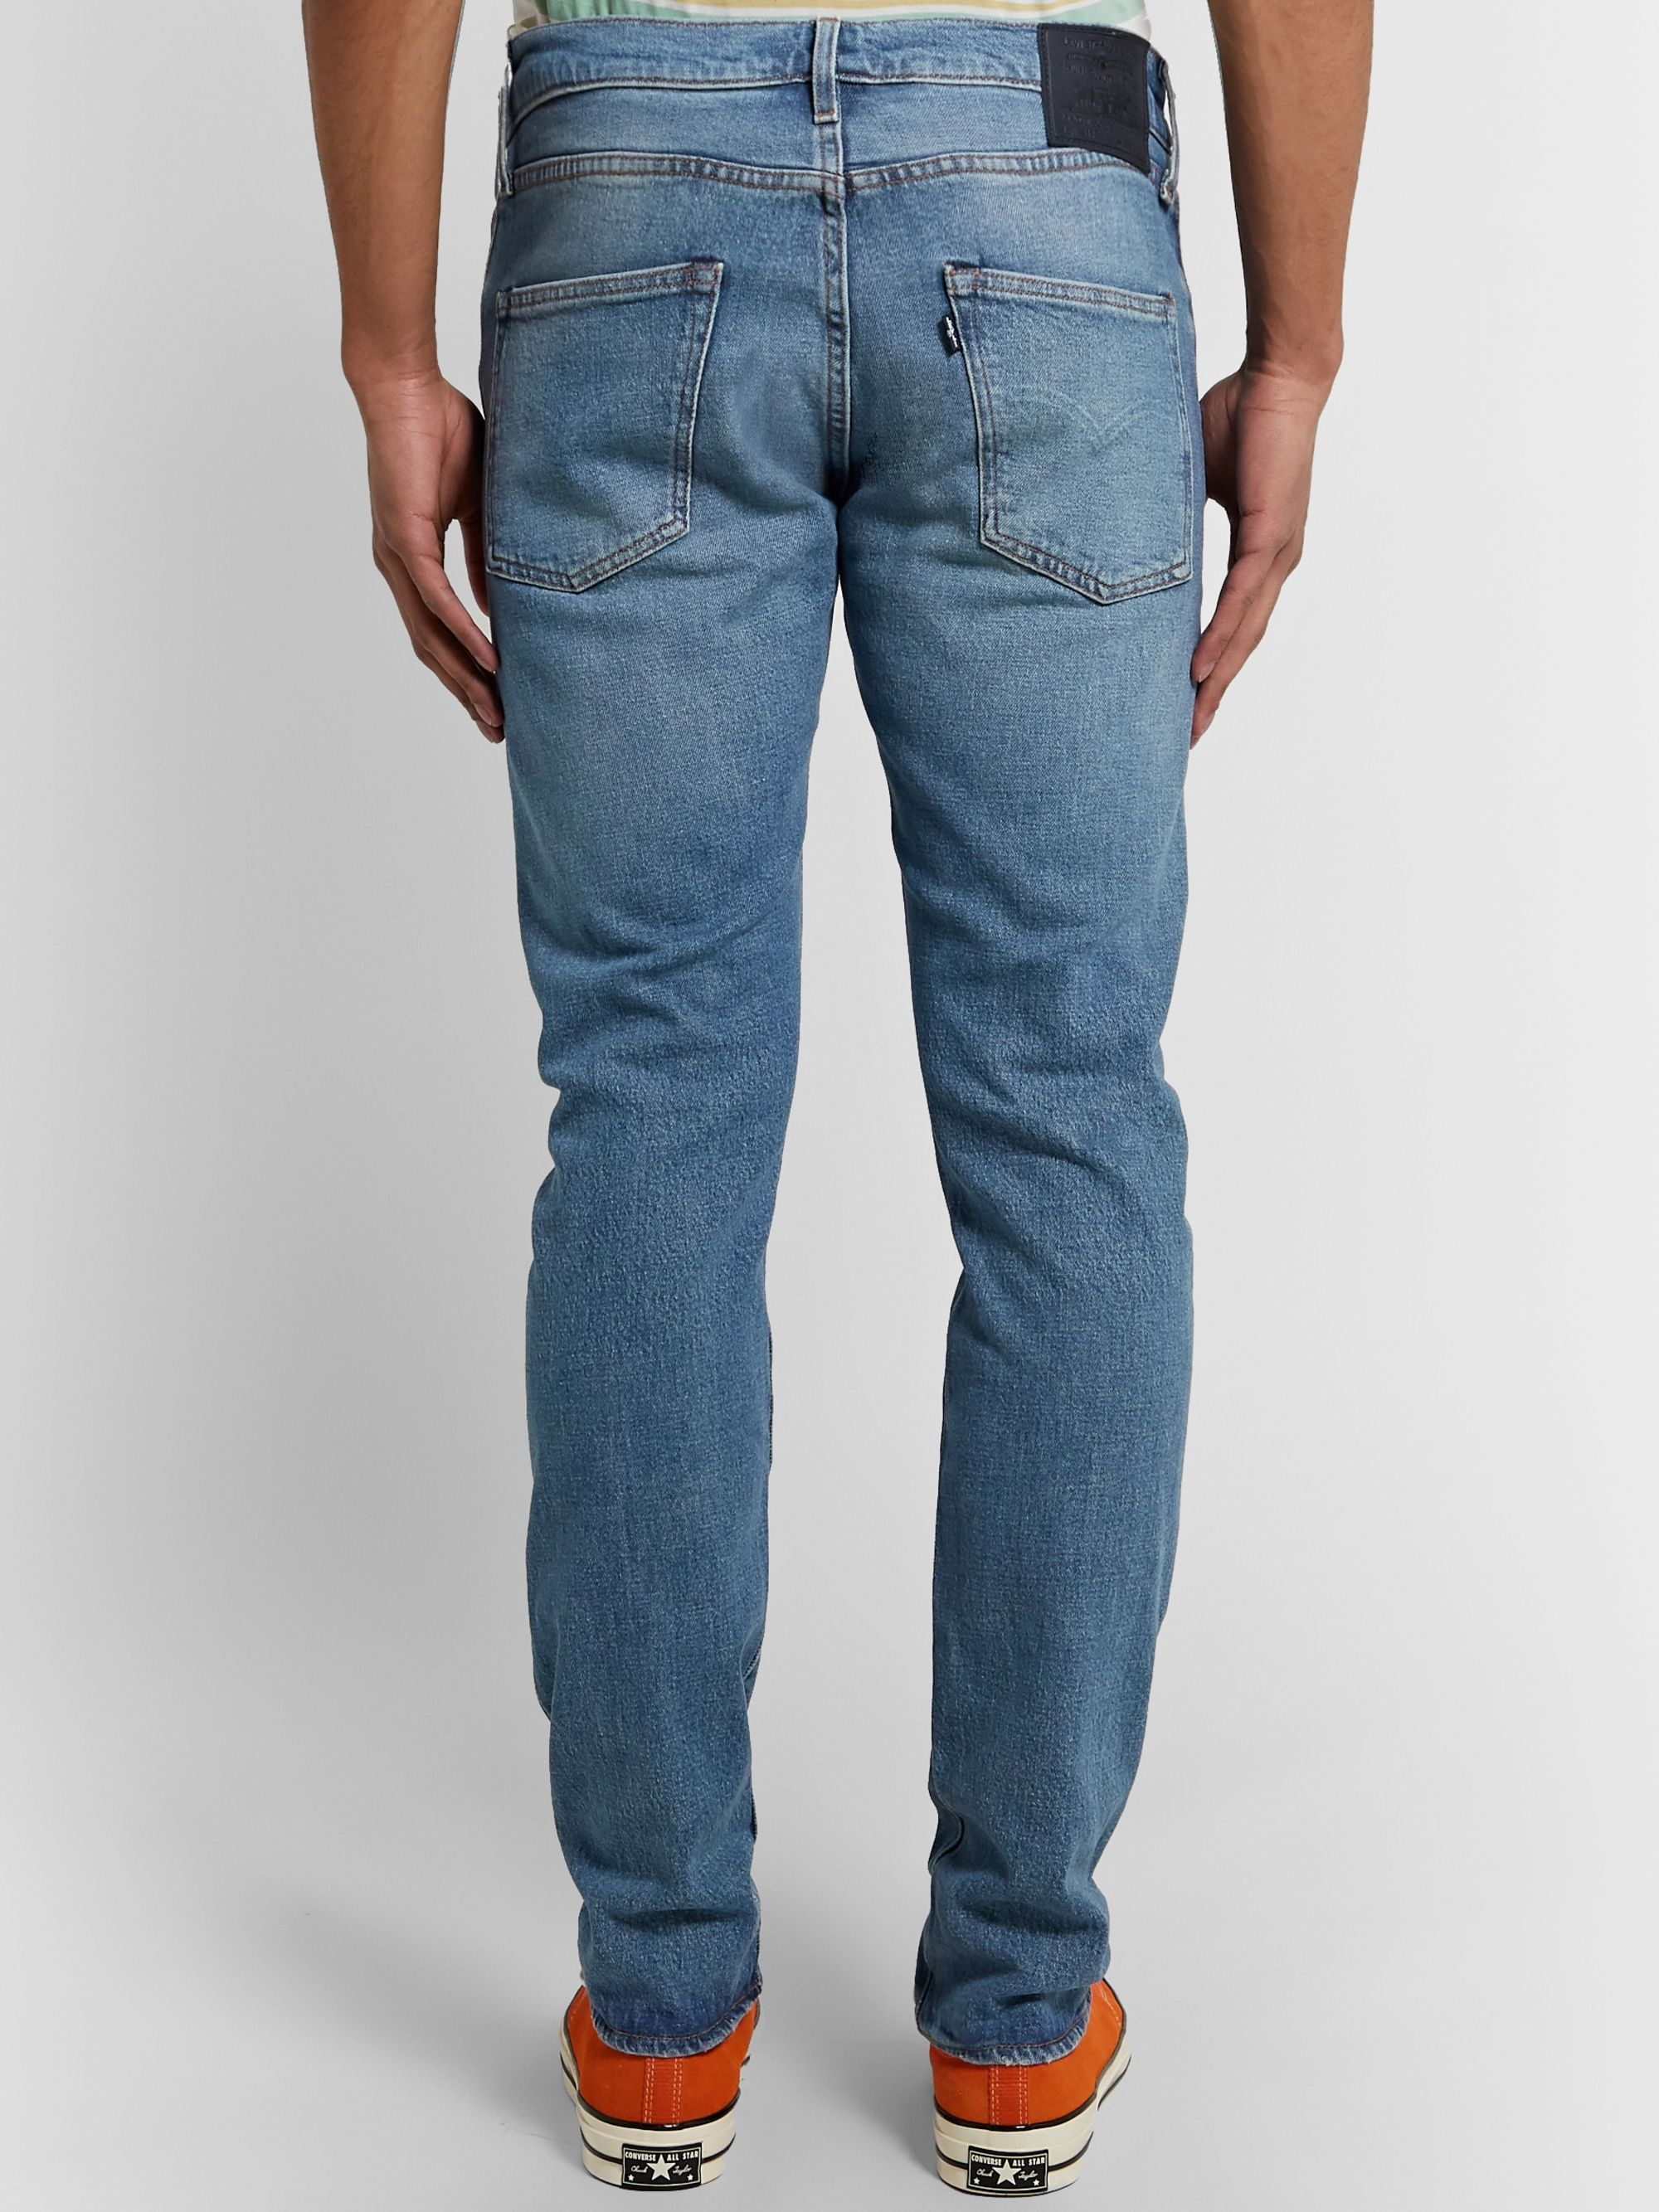 Levi's Made & Crafted 511 Slim-Fit Selvedge Stretch-Denim Jeans